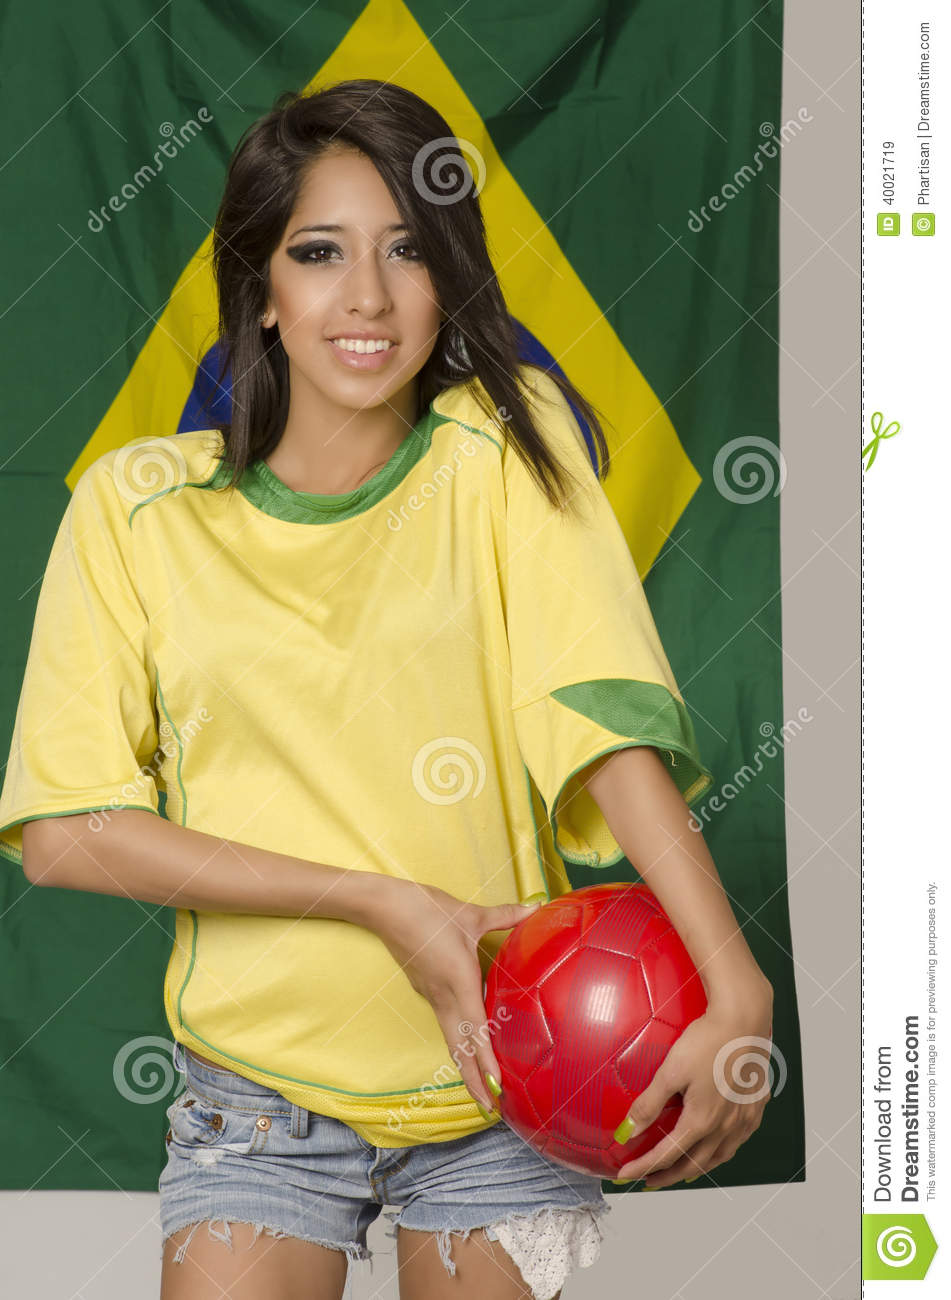 Know Beautiful soccer fan brazil excellent, support